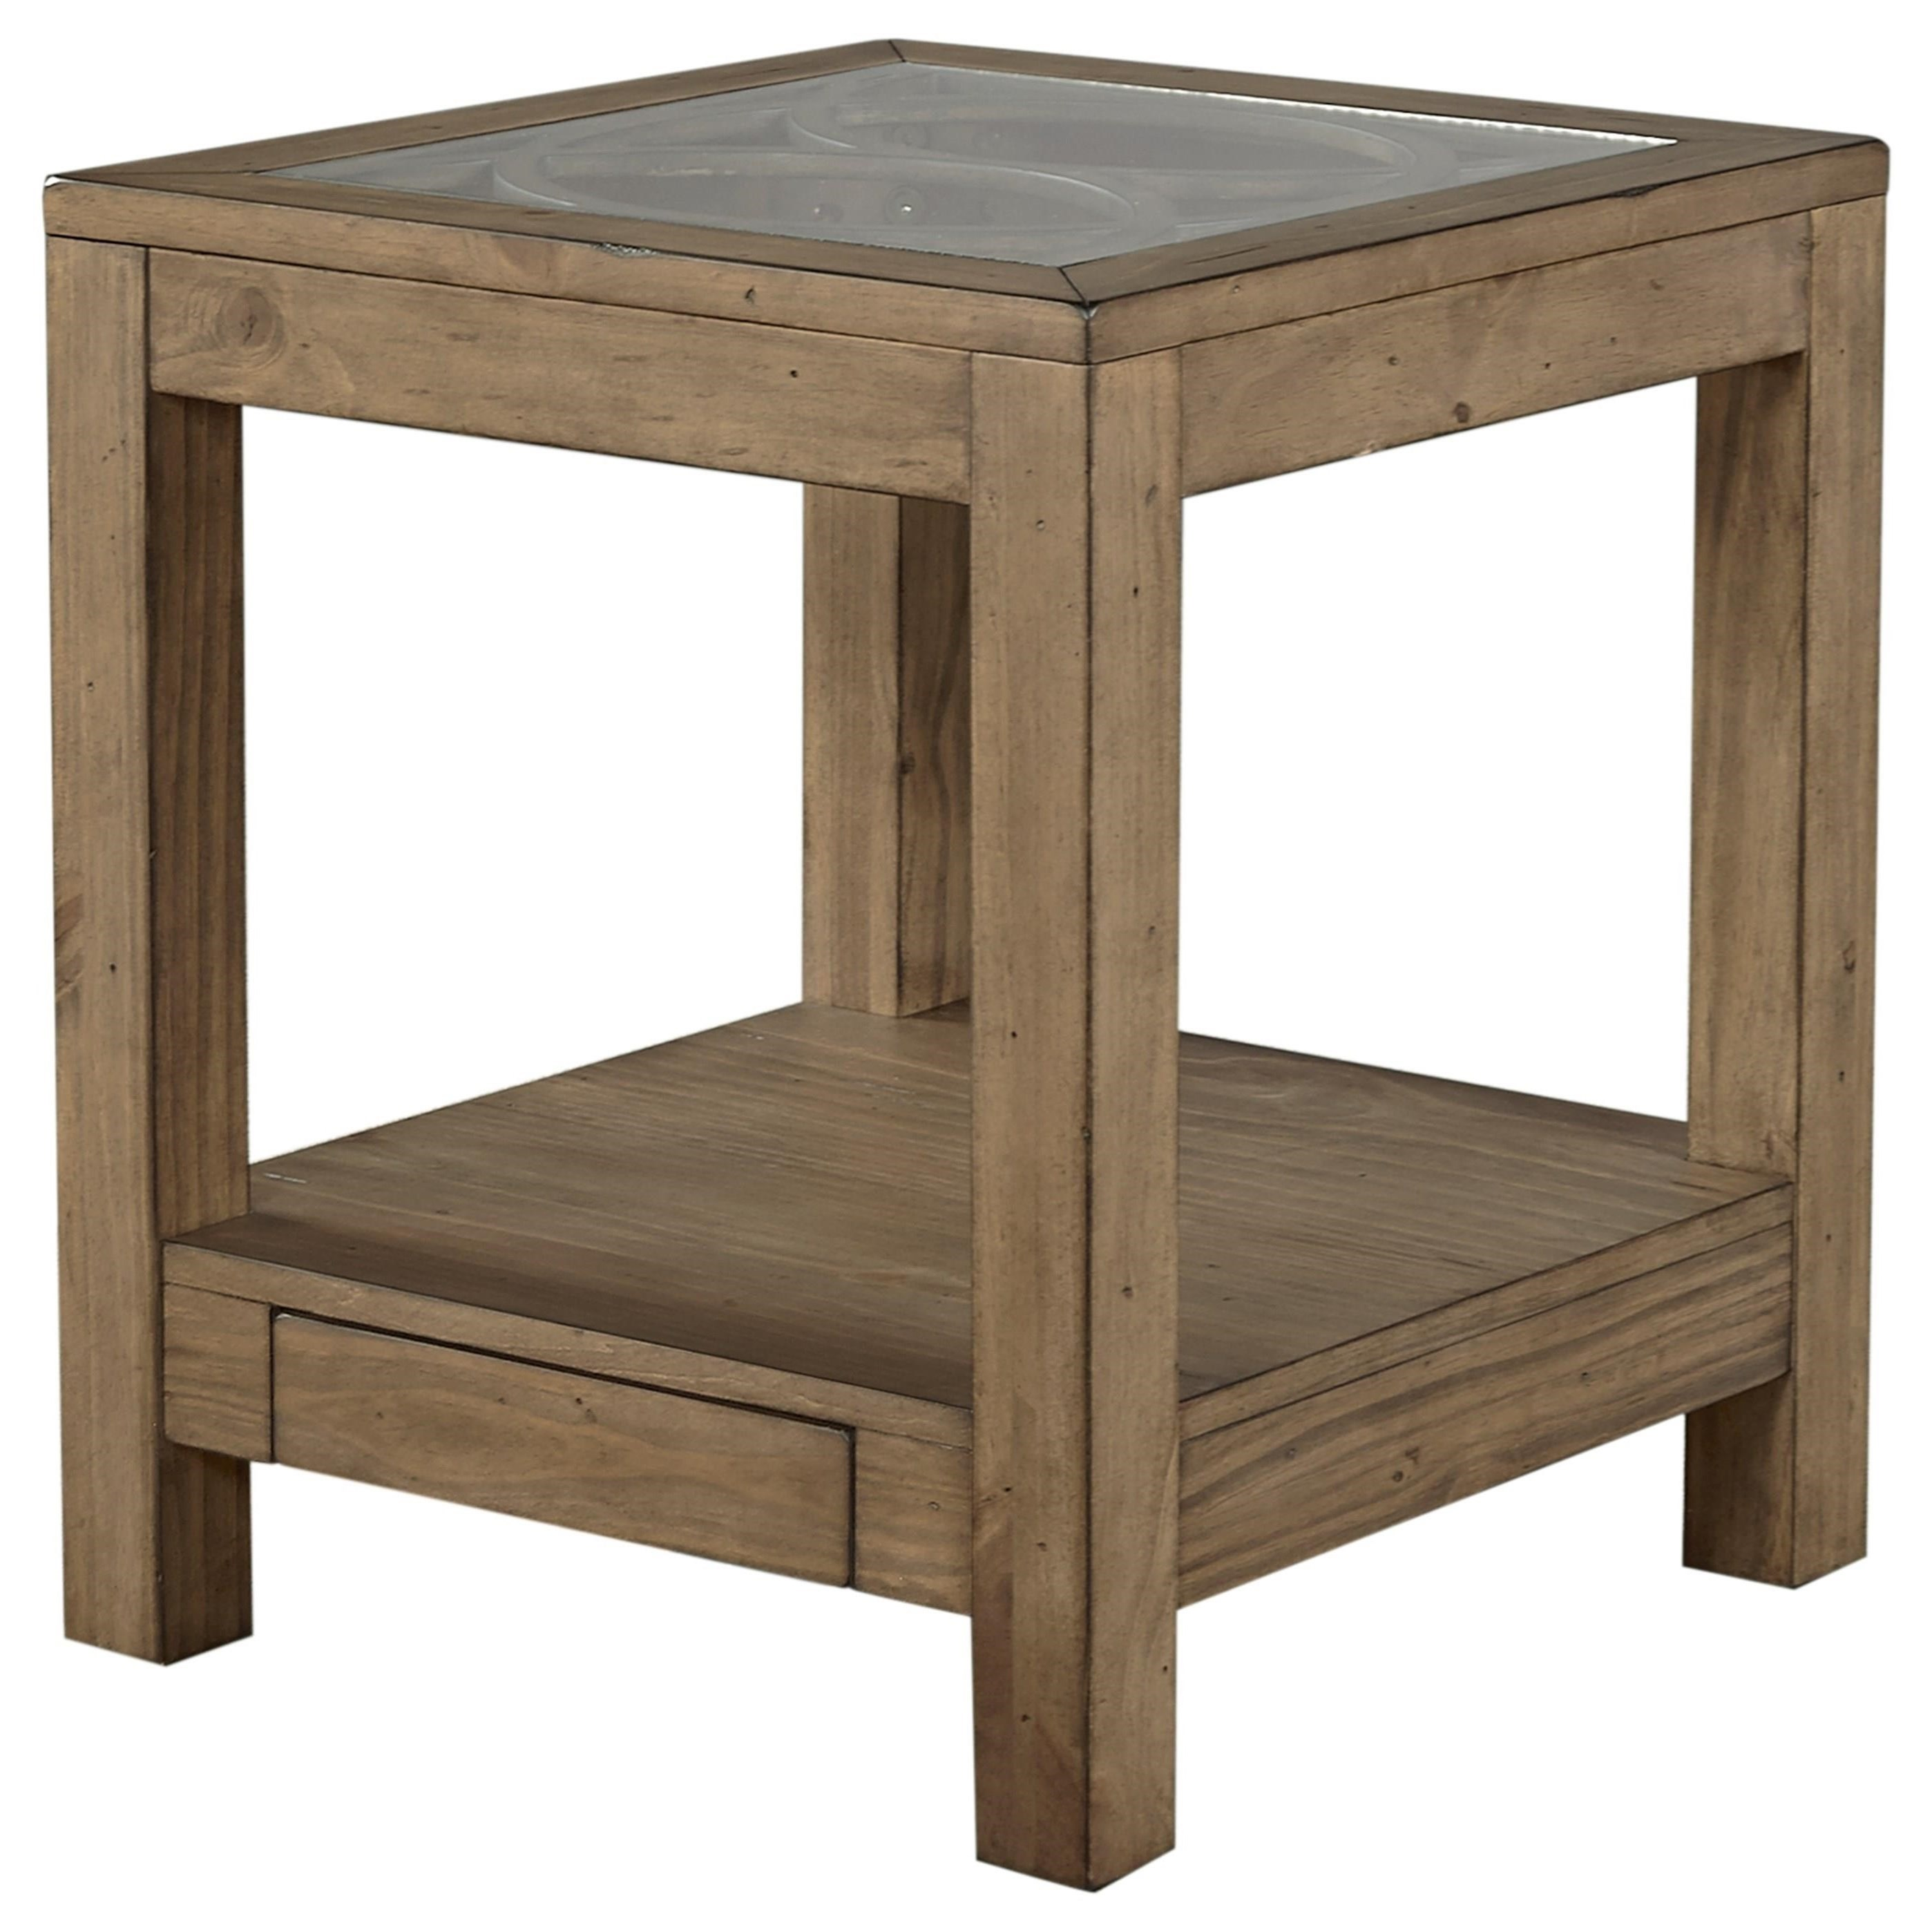 Aspenhome tildon i56 9145gl end table with power outlet for Bright colored side tables